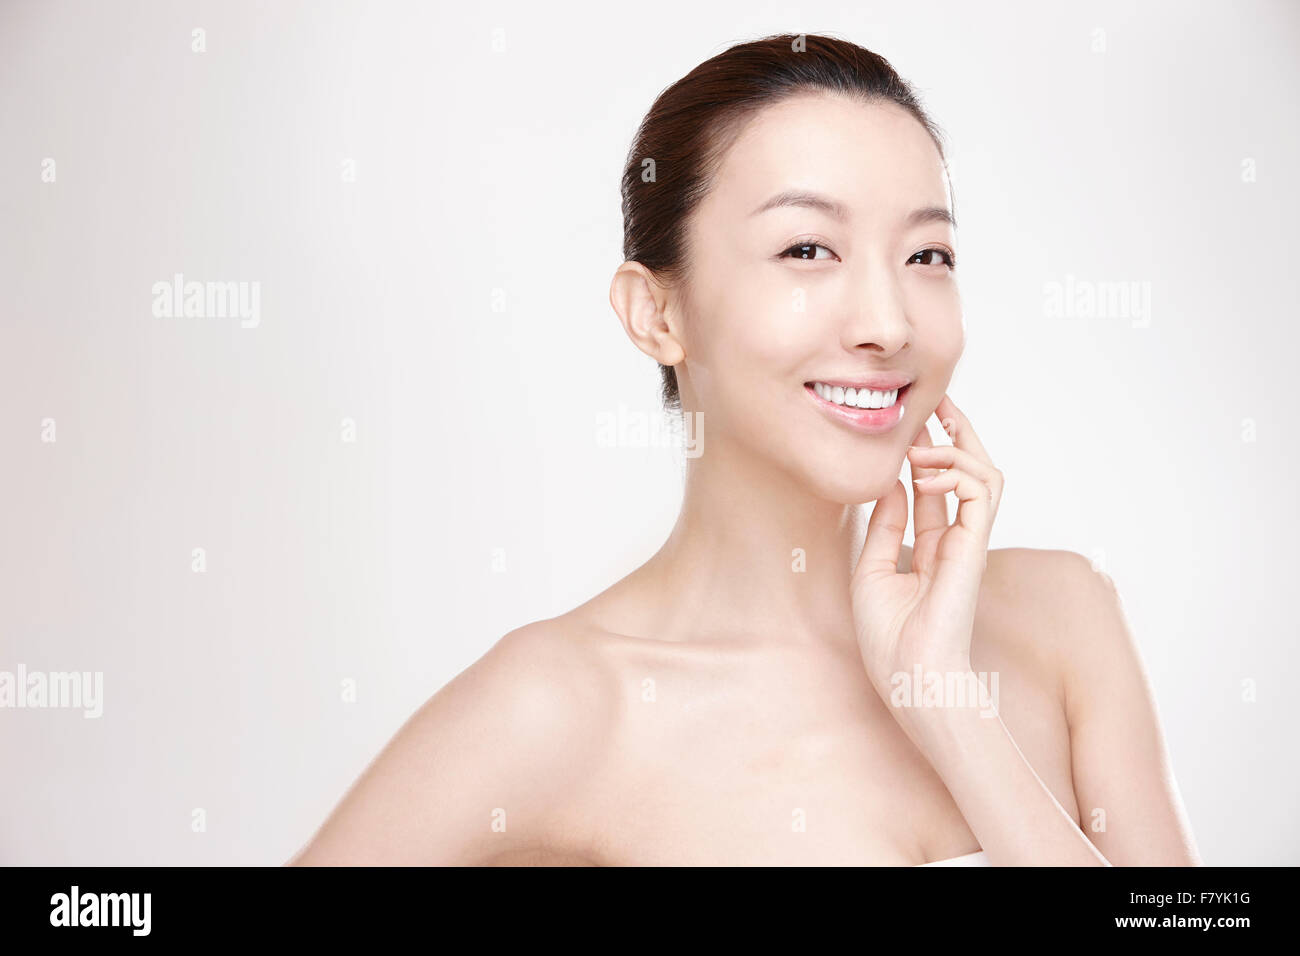 A woman touching her face - Stock Image